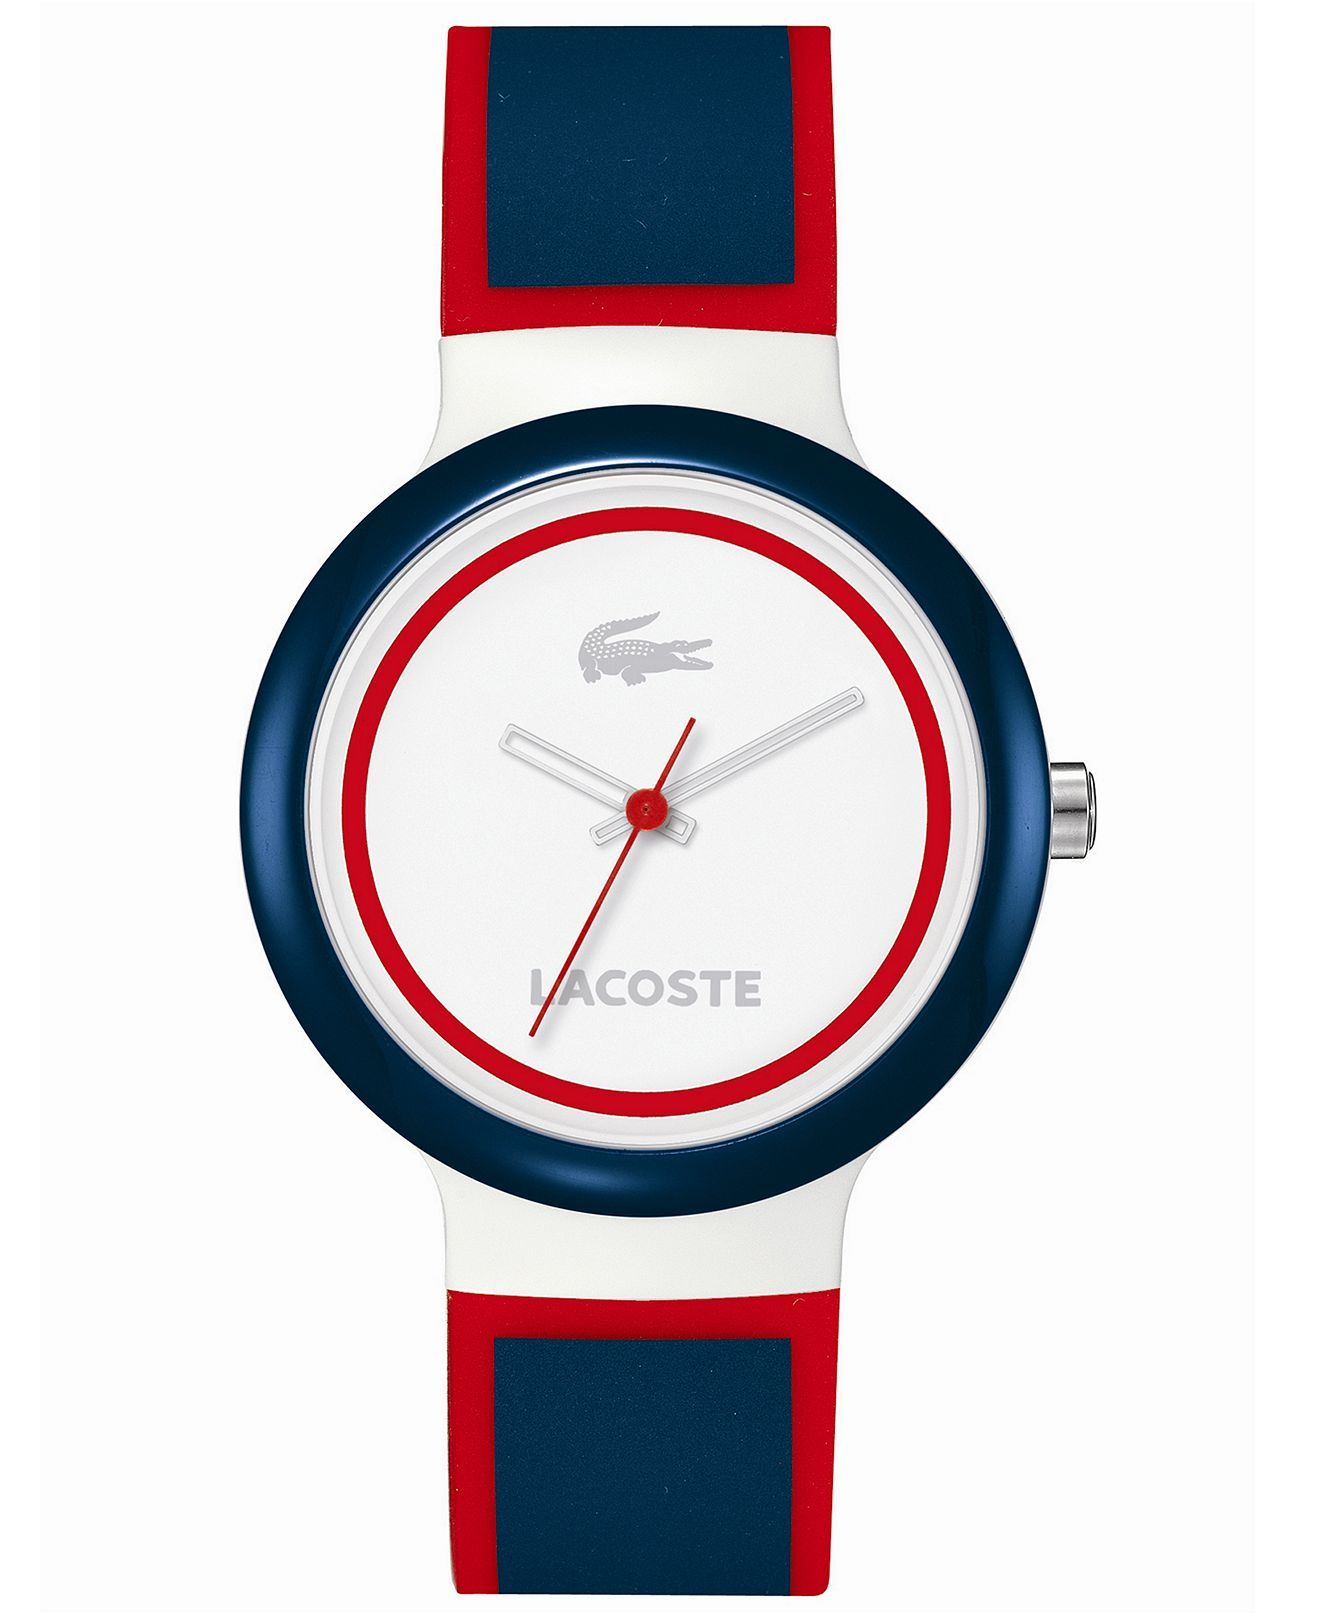 lacoste watch goa blue and red silicone strap 40mm 2000692 lacoste watch goa blue and red silicone strap 40mm 2000692 men s watches jewelry